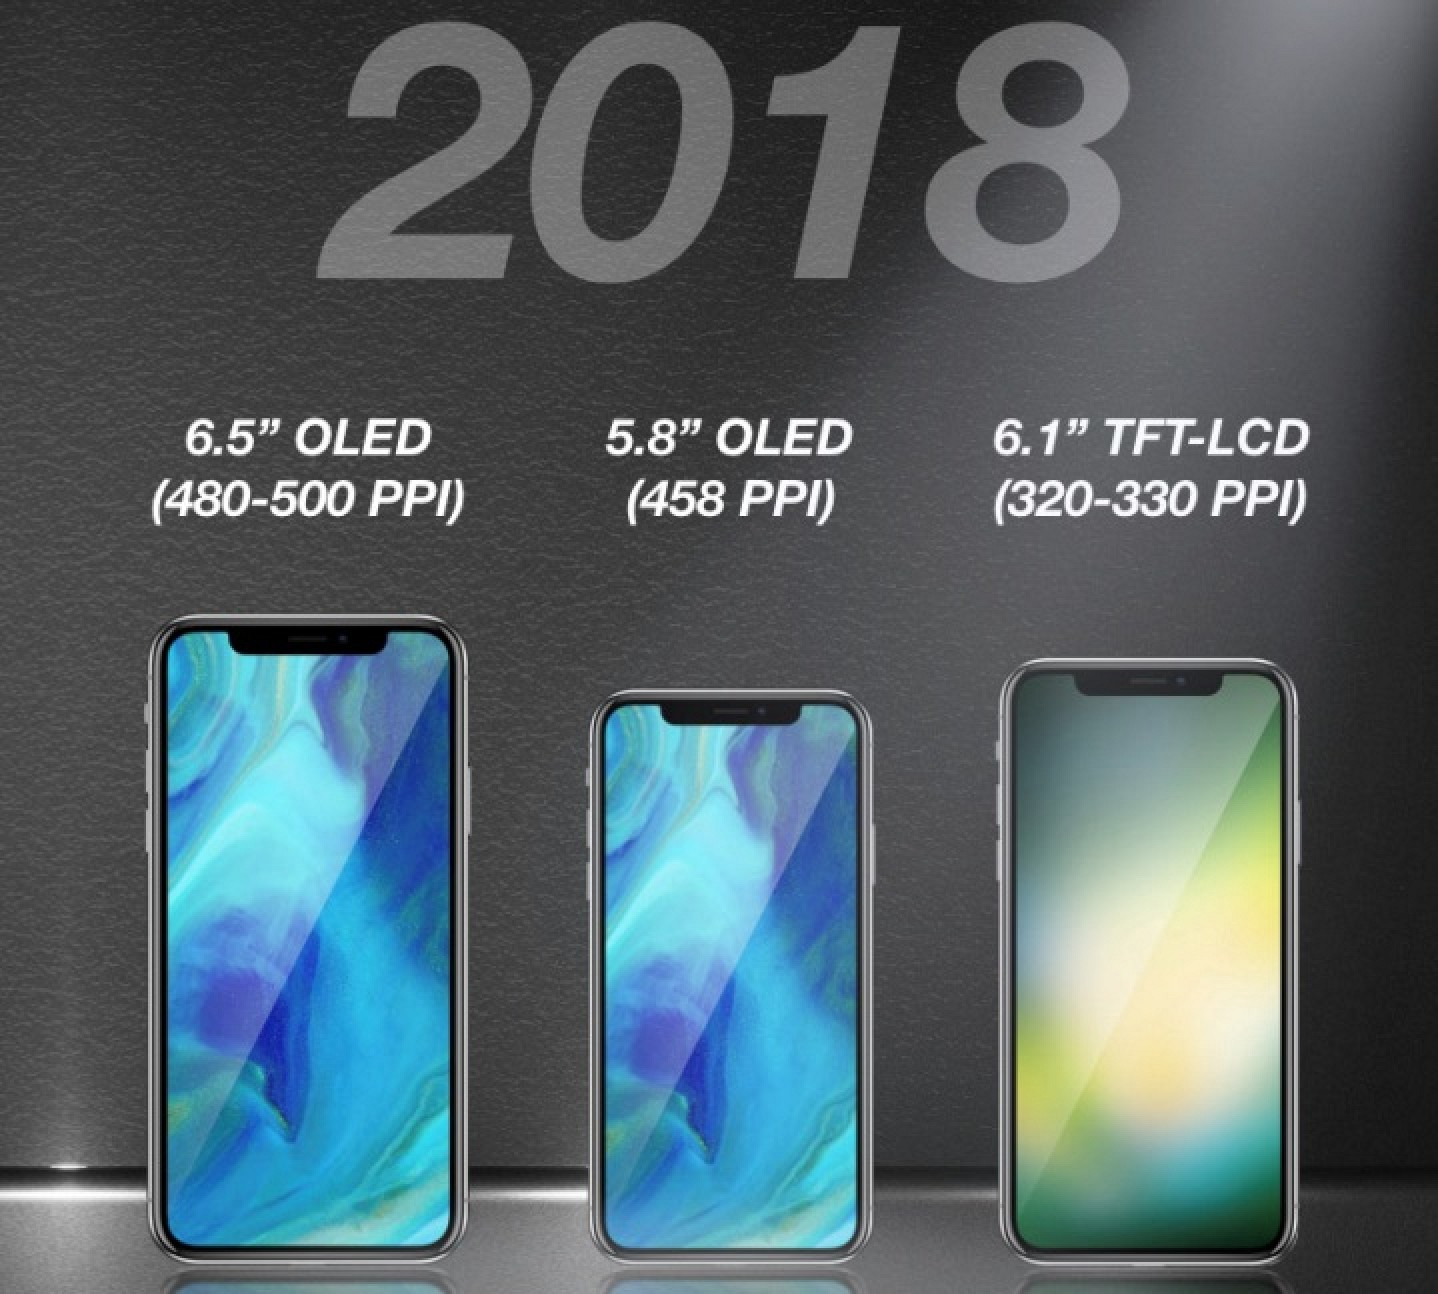 photo image KGI: Apple to Launch 6.5-Inch 'iPhone X Plus' Next Year Alongside 5.8-Inch OLED and 6.1-Inch LCD Models